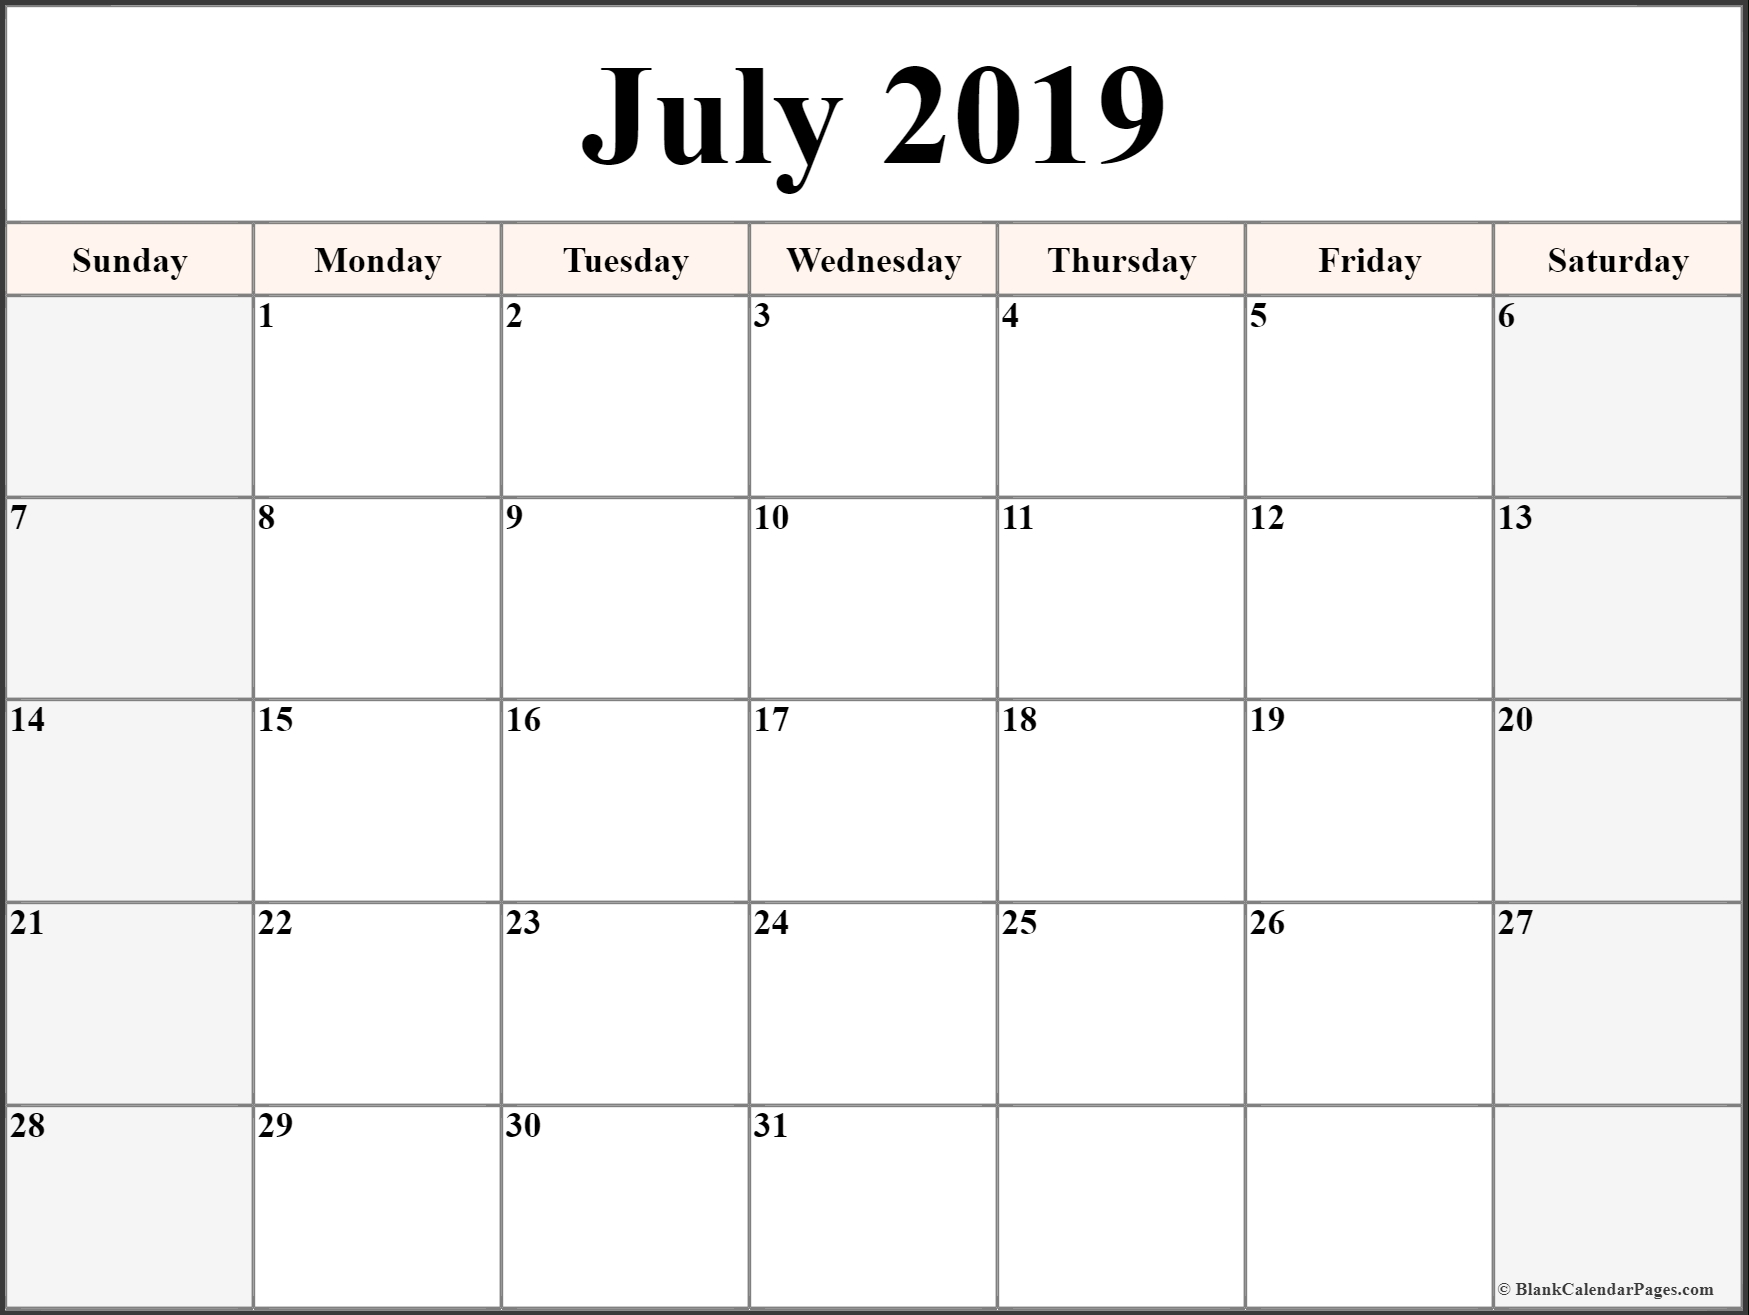 July 2019 Printable Calendar Blank Templates - Calendar Hour - 2019 in July Printable Calendar With Hours